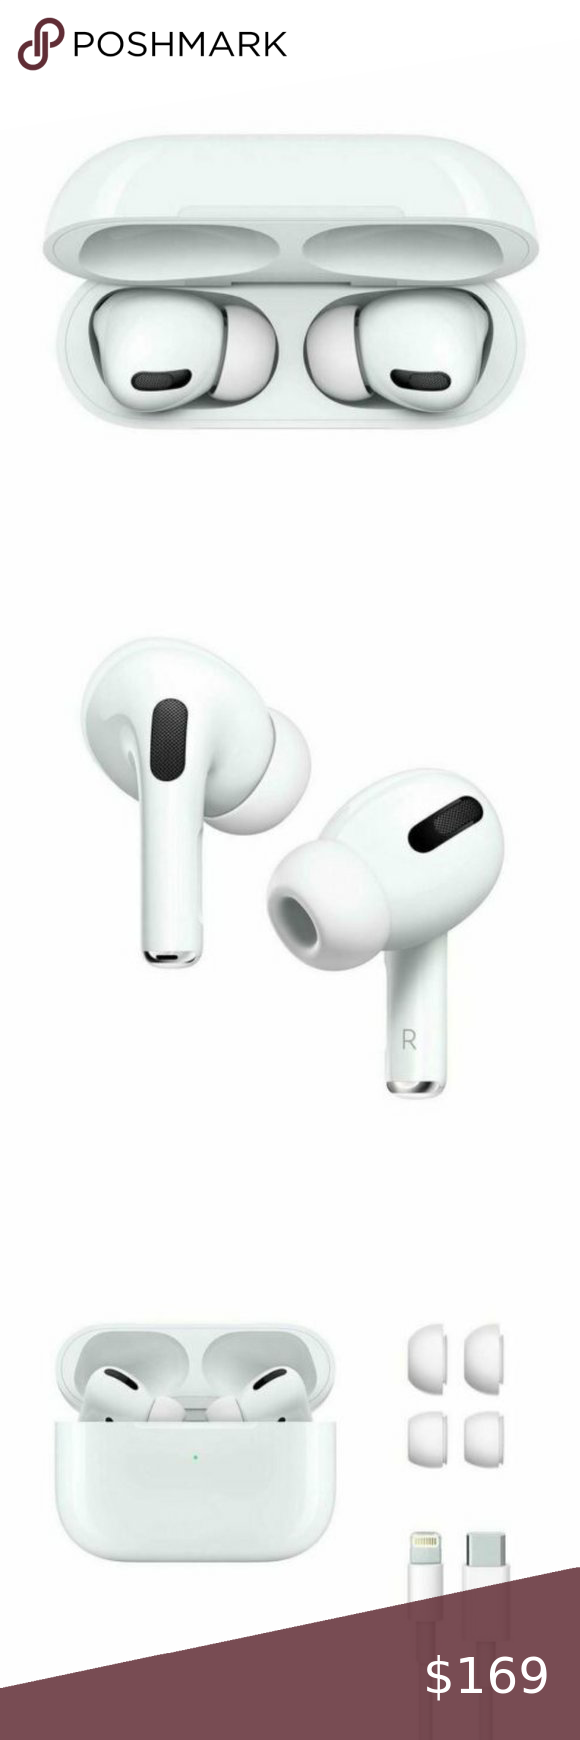 Apple Airpods Pro Mwp22am A Bluetooth W Wireless Apple Airpods Pro Mwp22am A Bluetooth W Wireless Charging Case Us Warranty This Airpods Pro Bluetooth Apple